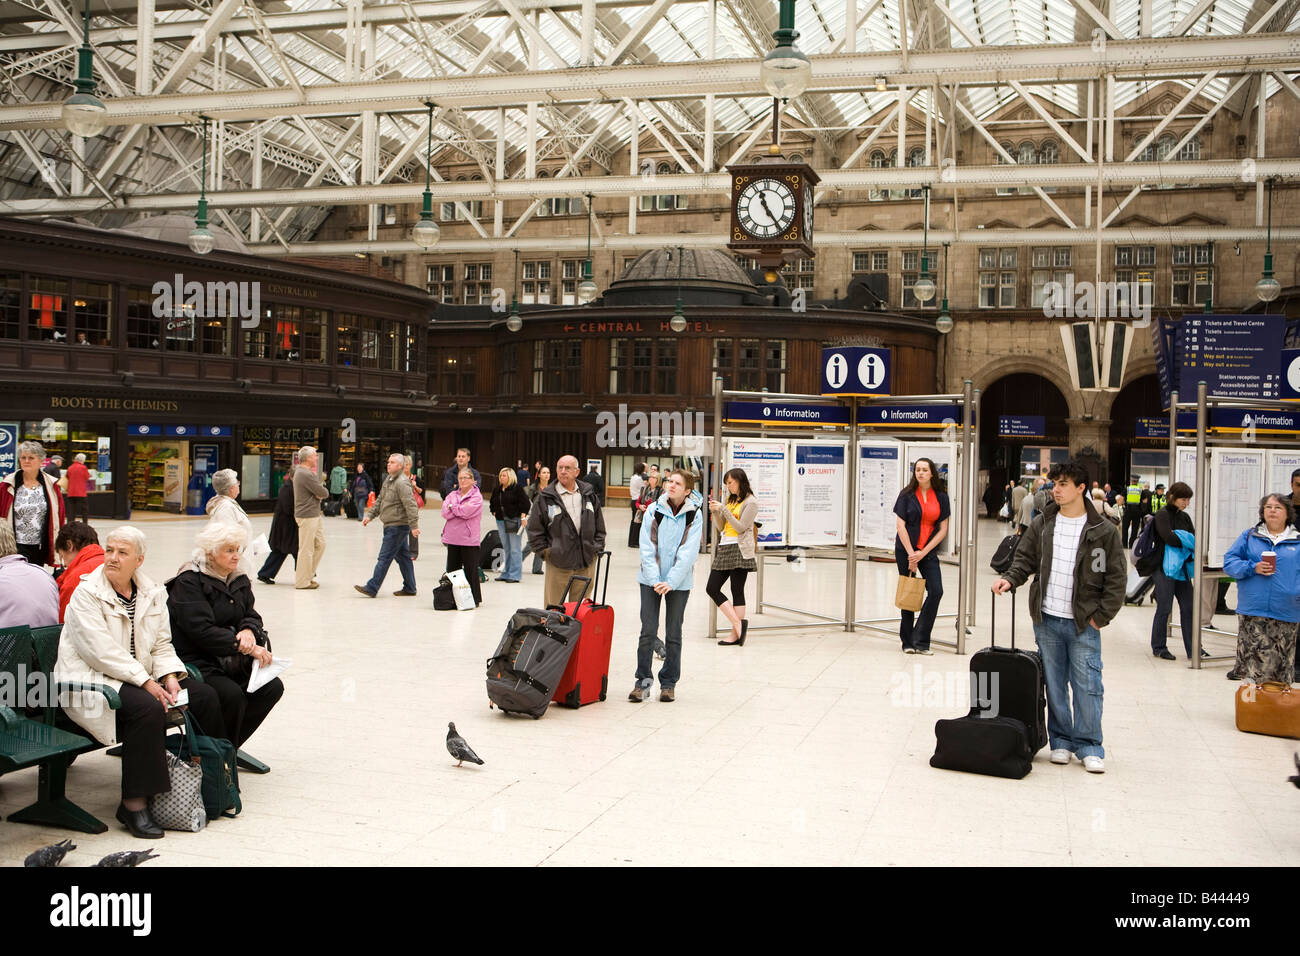 UK Scotland Glasgow Central Railway Station main concourse passengers waiting - Stock Image